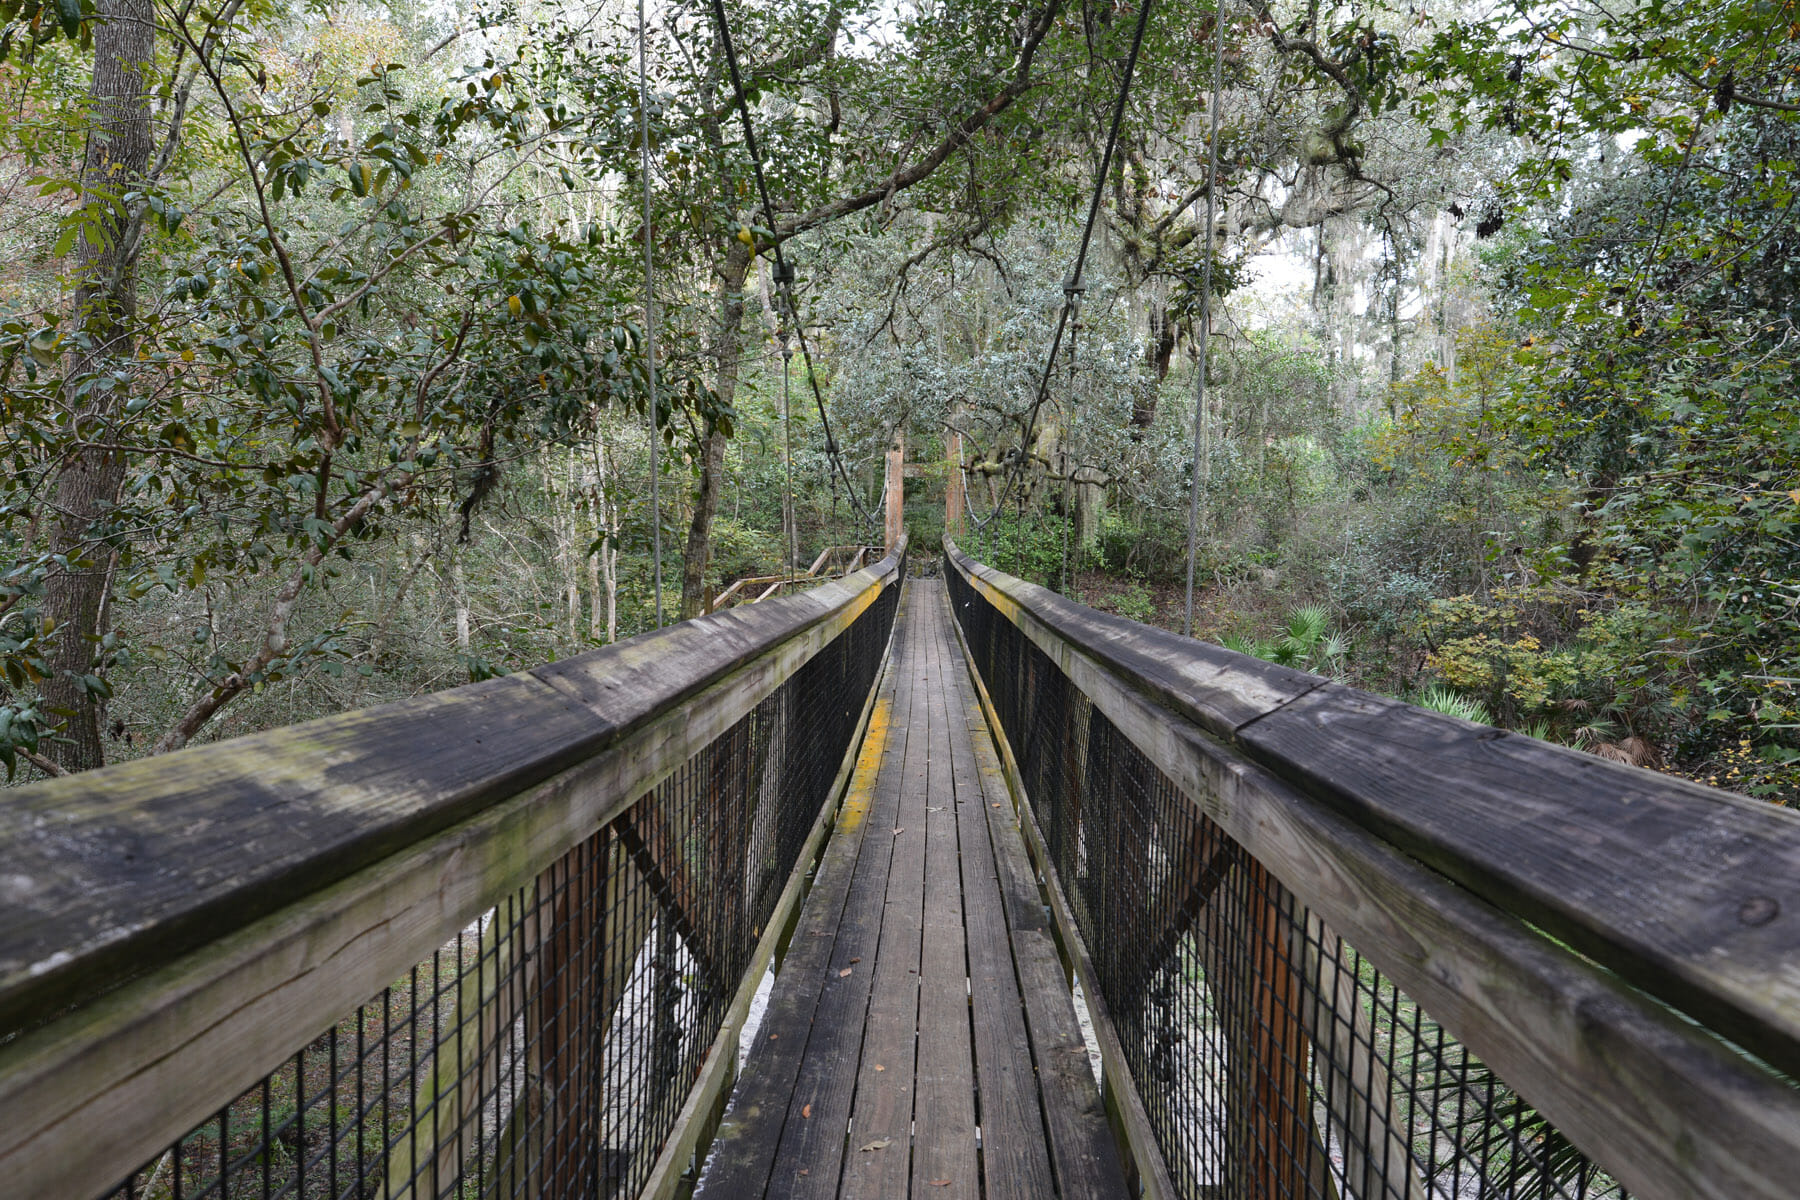 Swinging bridge at Ravine Gardens